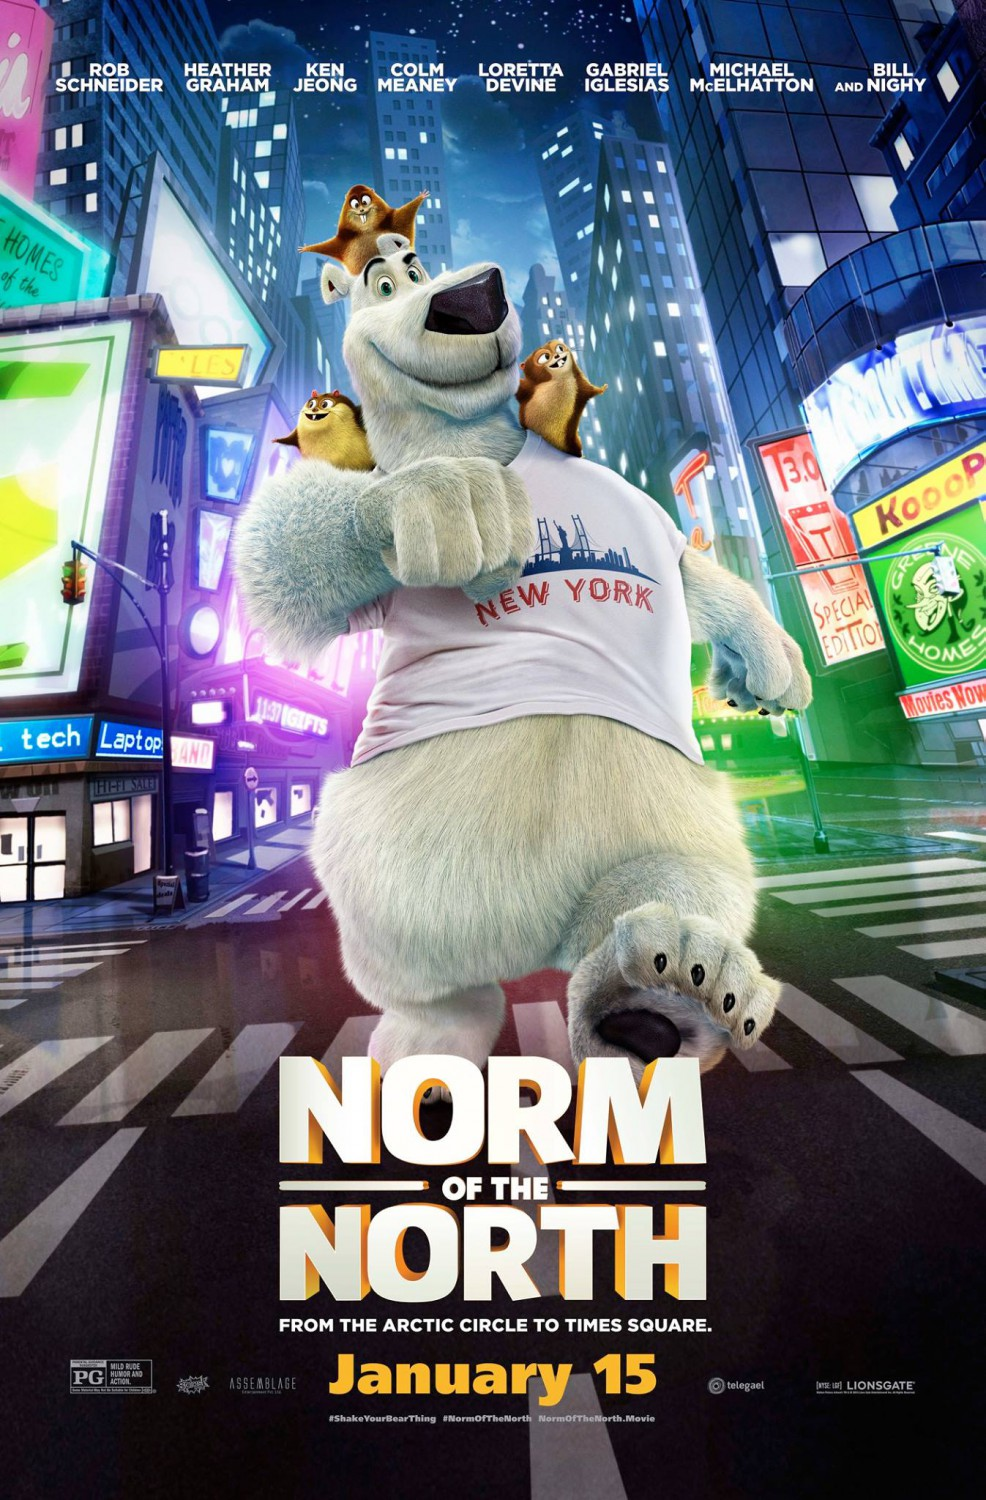 13 - Norm of the North